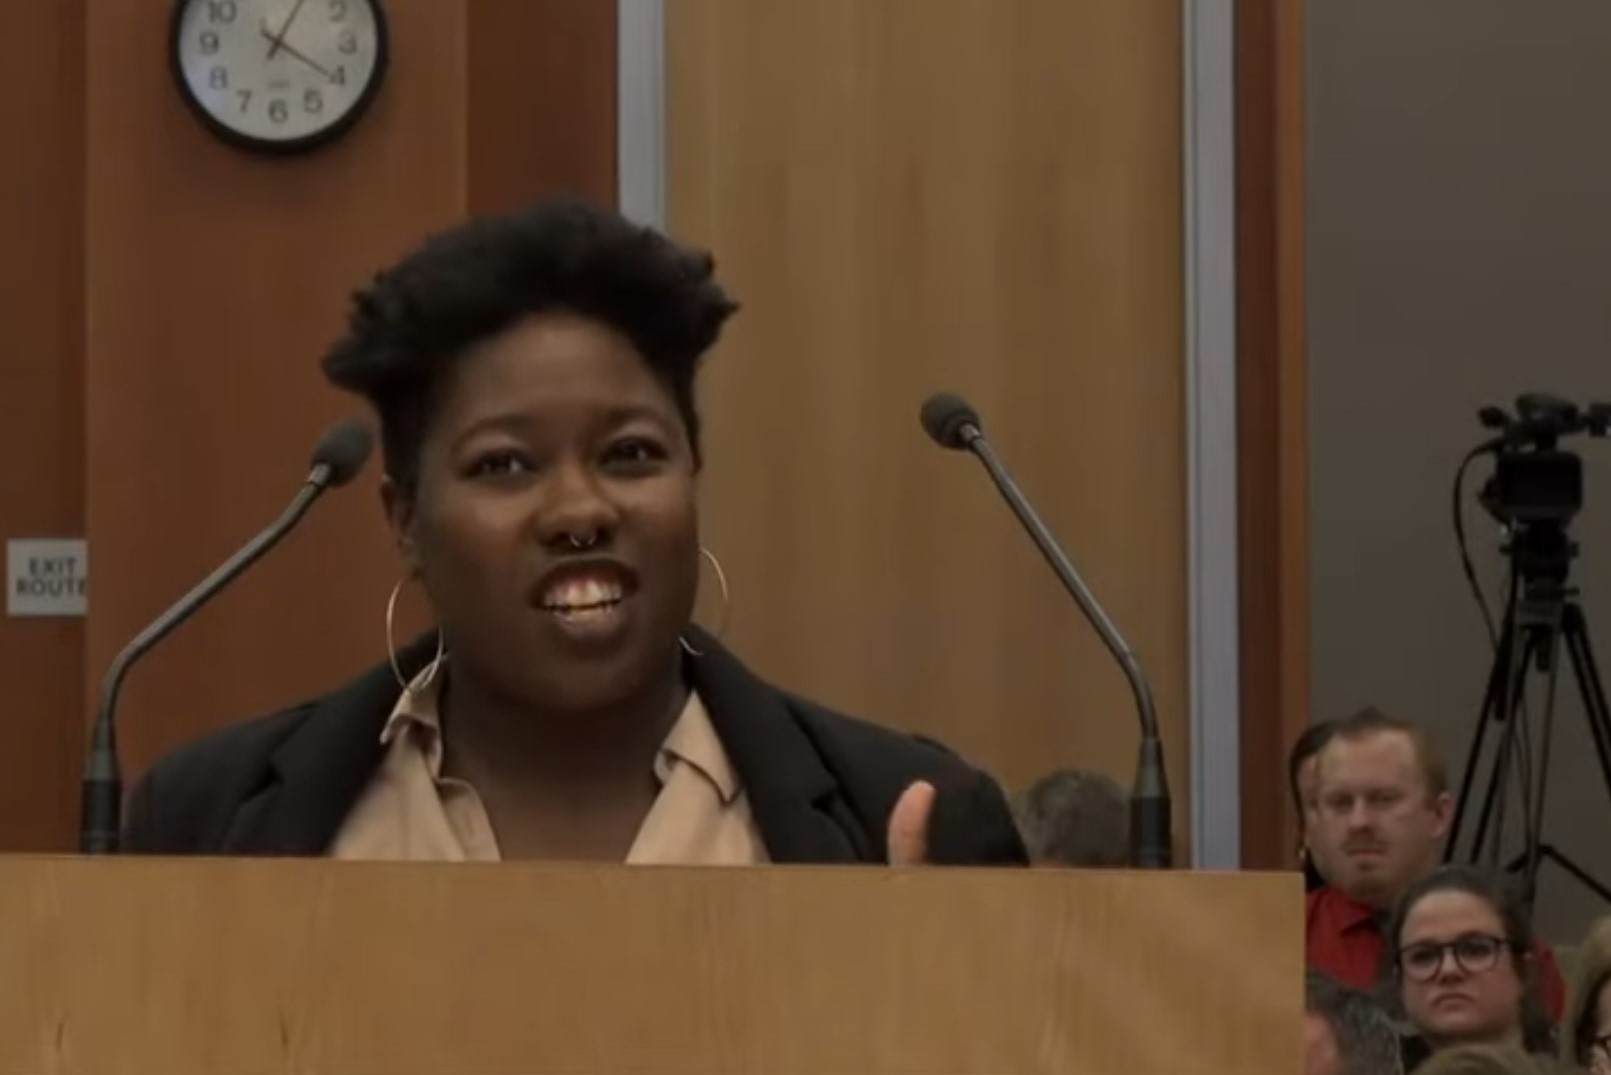 Nailah Pope Harden, ClimatePlan, gives public comment at CTC Jan 2020 meeting in Sacramento. Credit: ClimatePlan